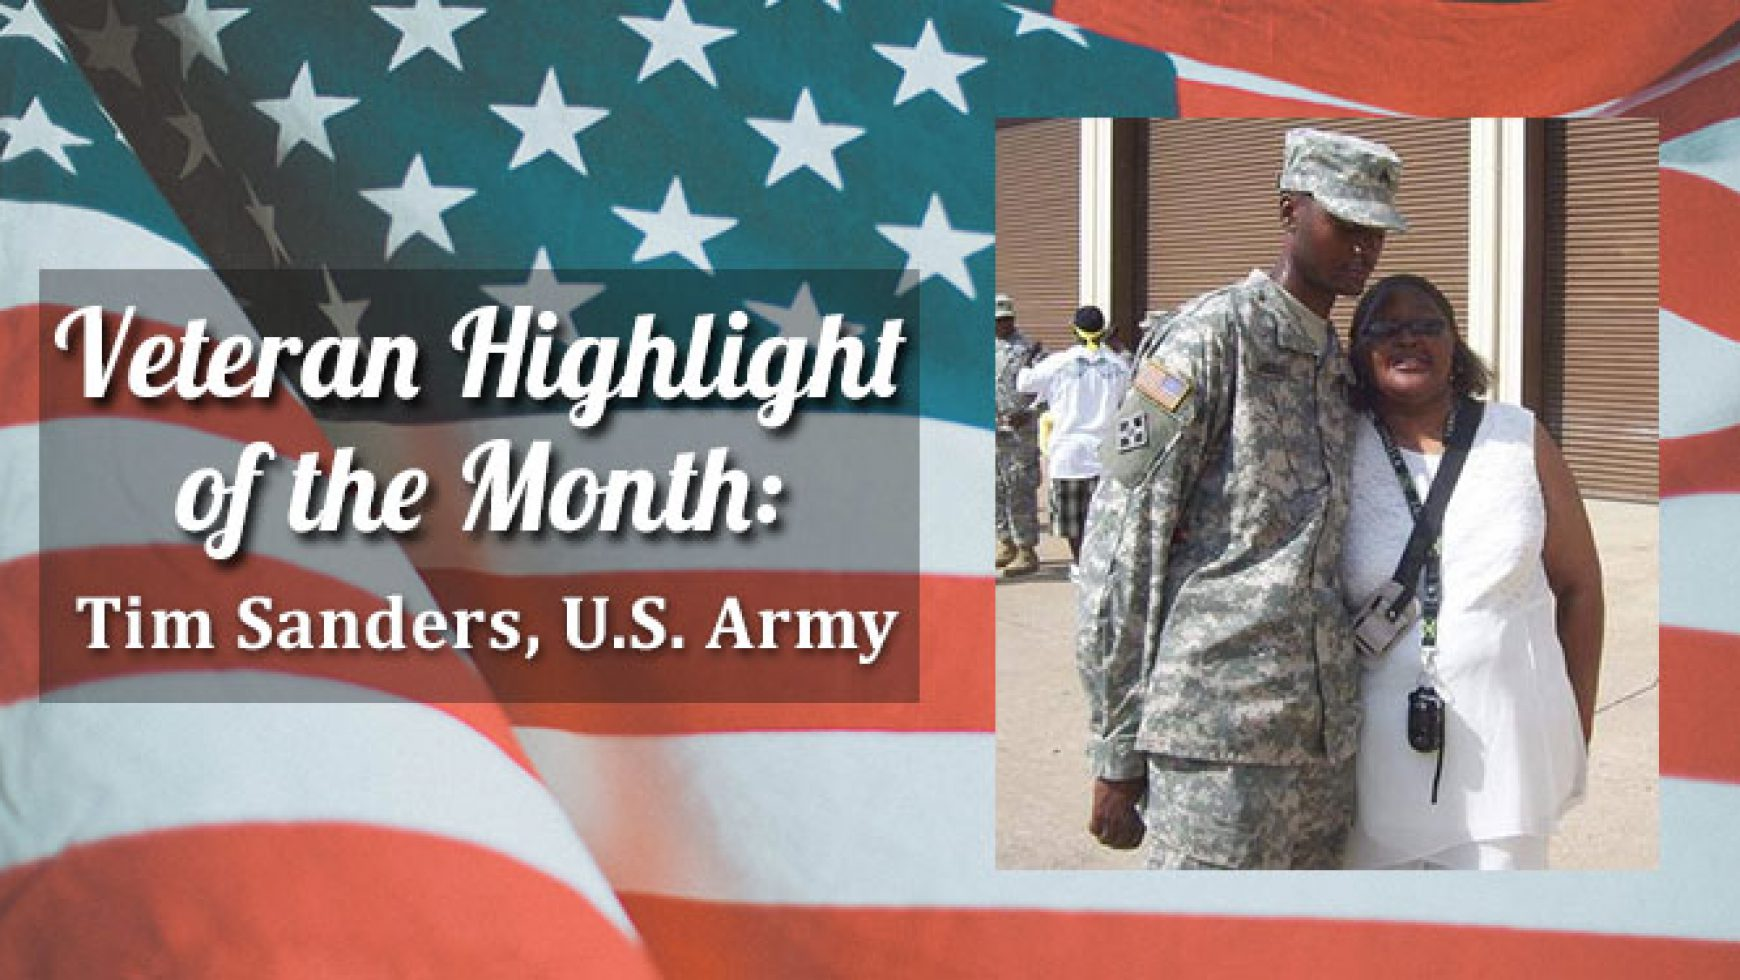 Veteran Highlight of the Month: Tim Sanders